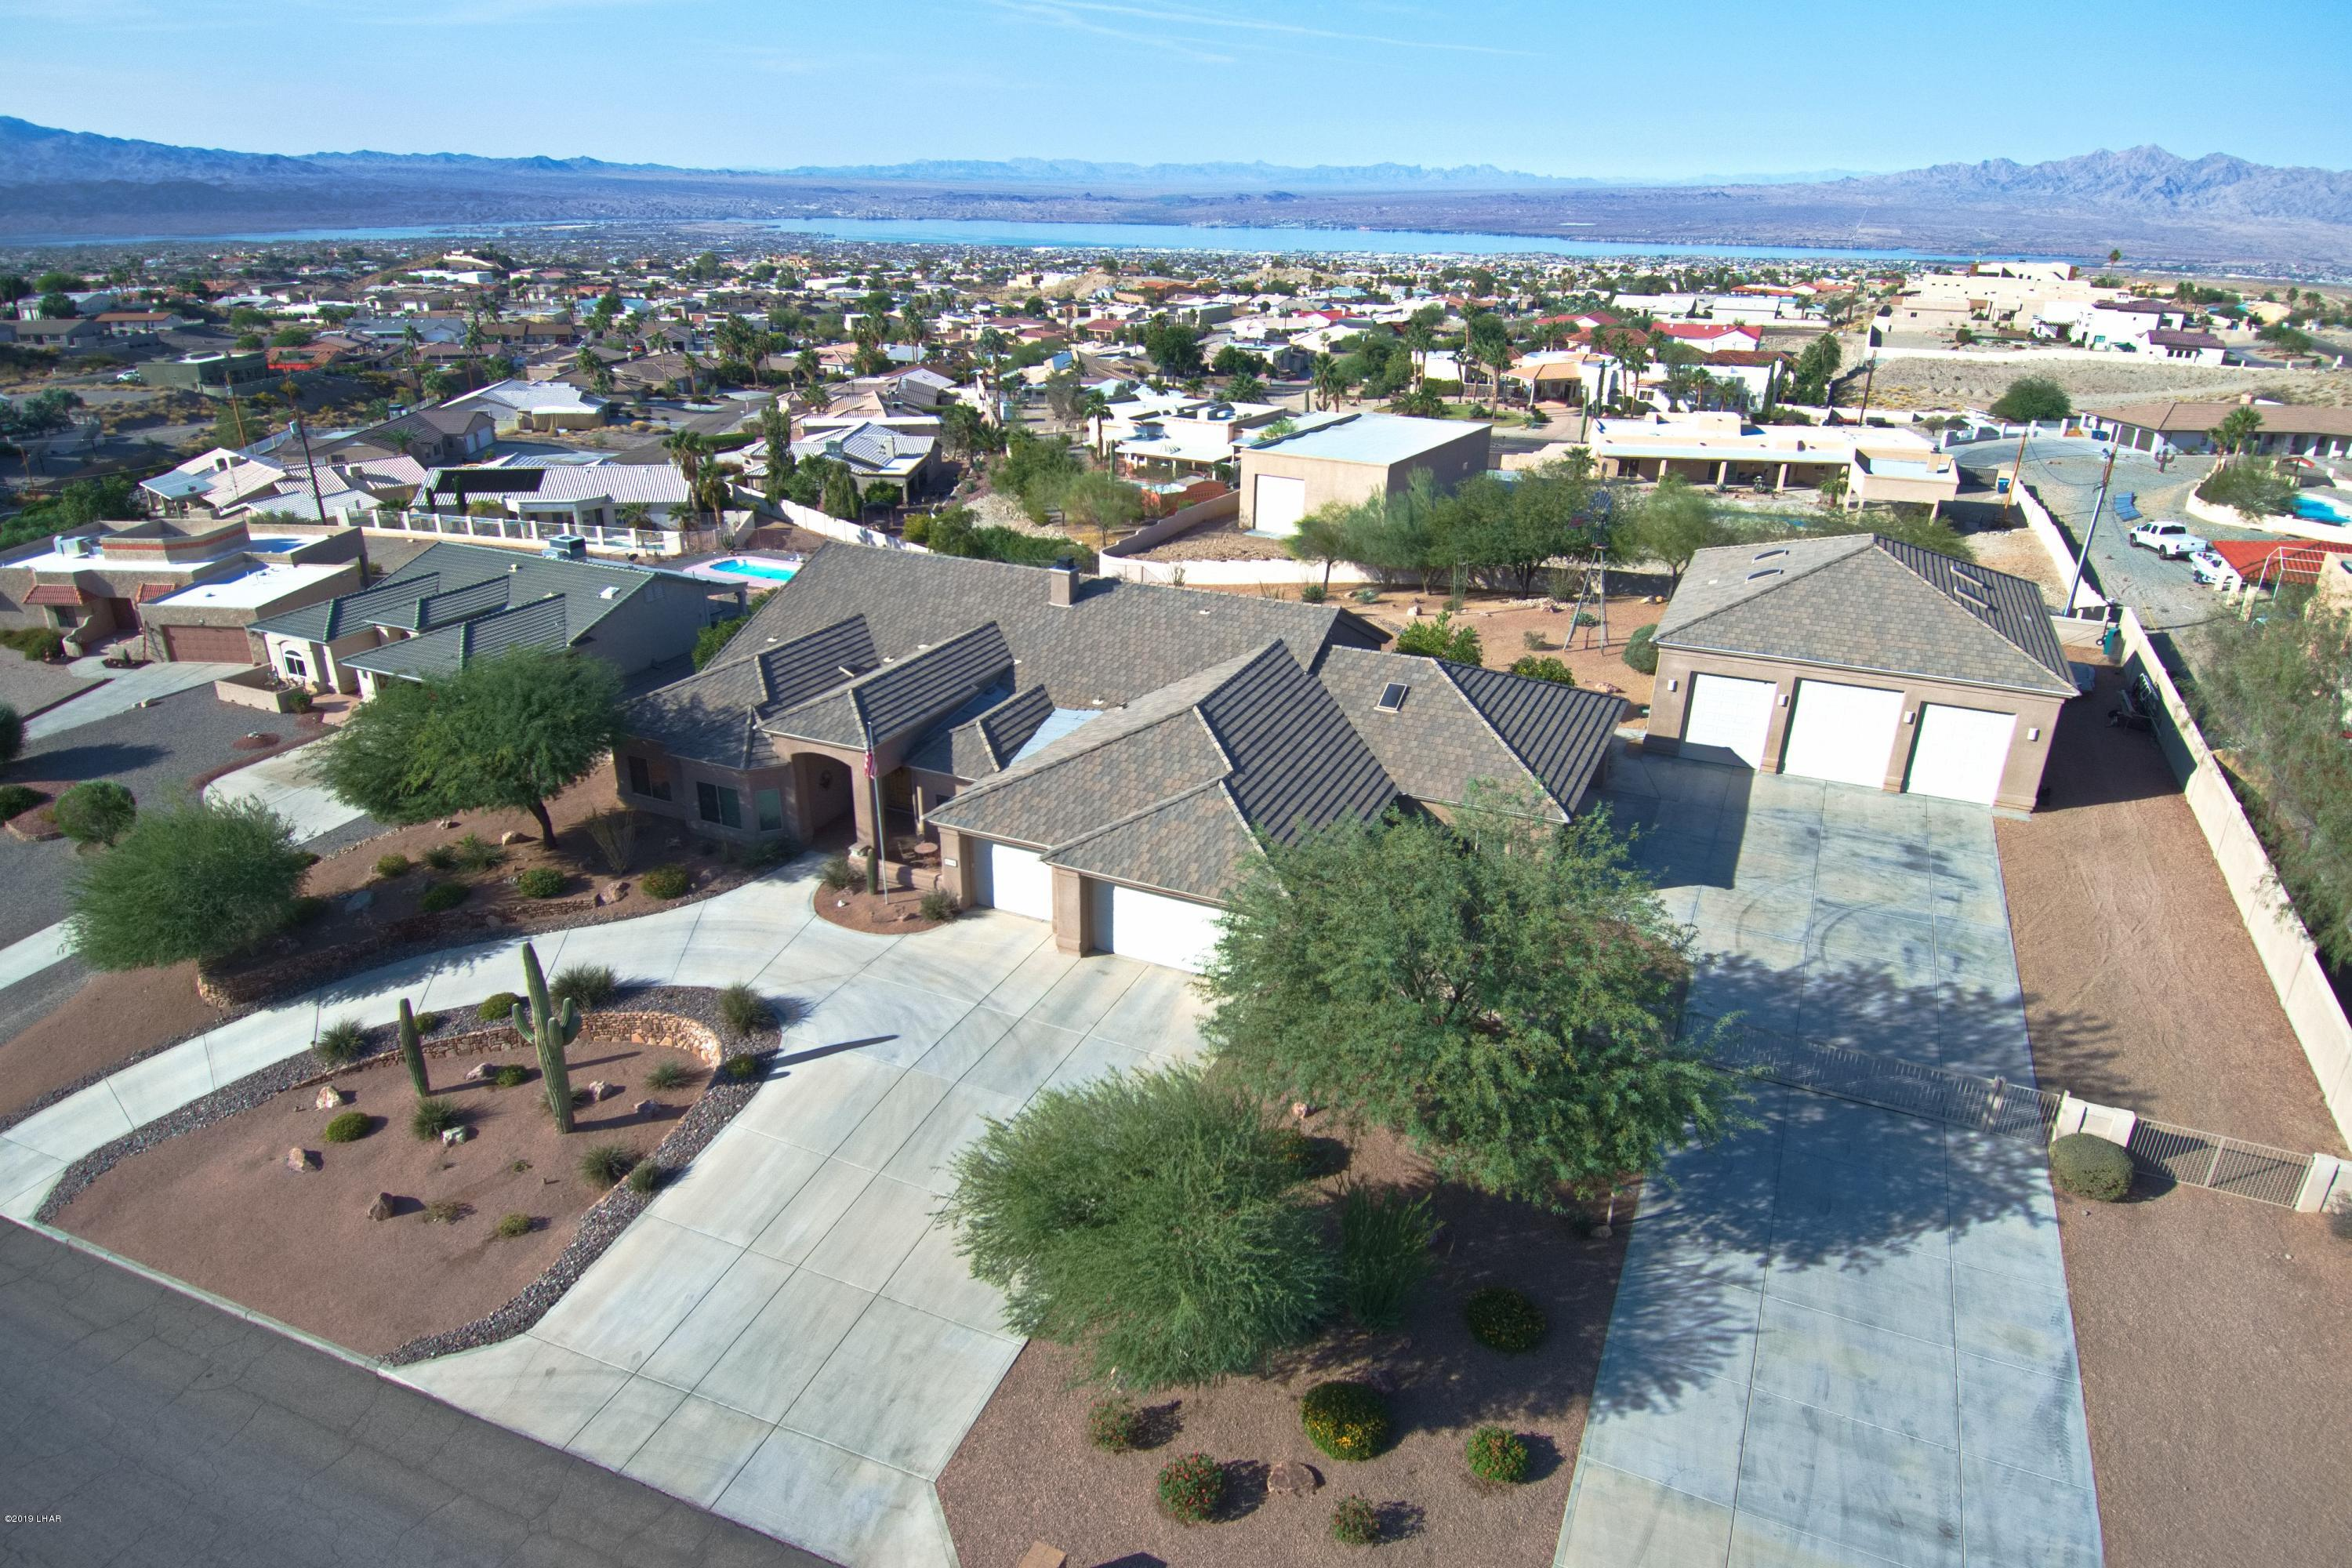 Photo of 524 Paso De Oro Dr, Lake Havasu City, AZ 86404